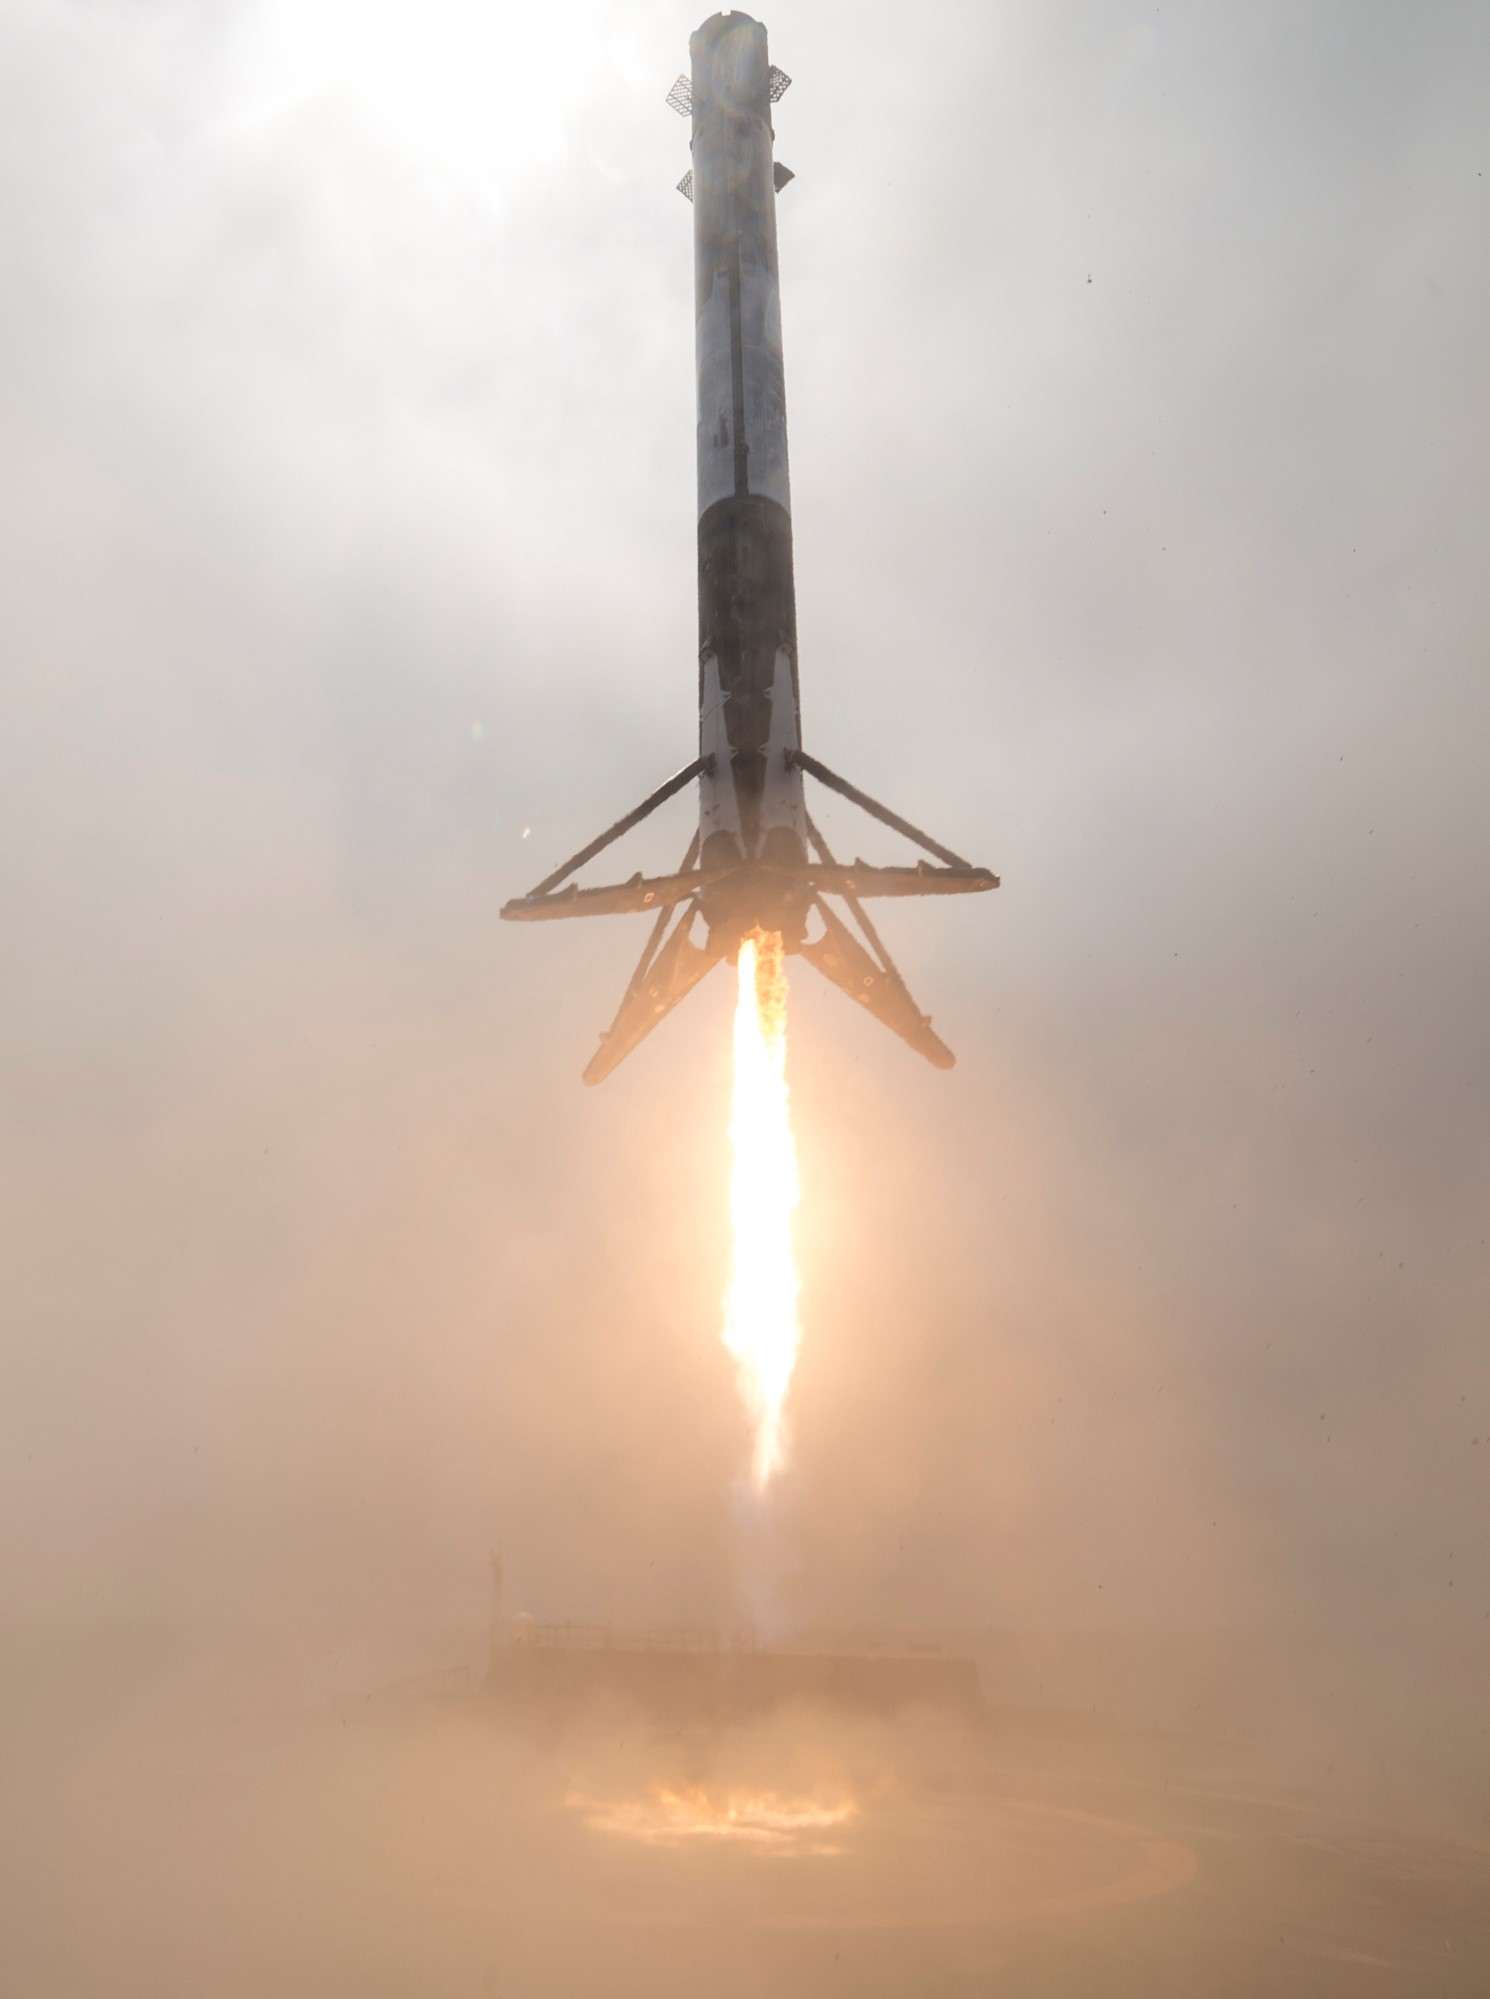 SpaceX Formosat5 1038 landing (SpaceX)